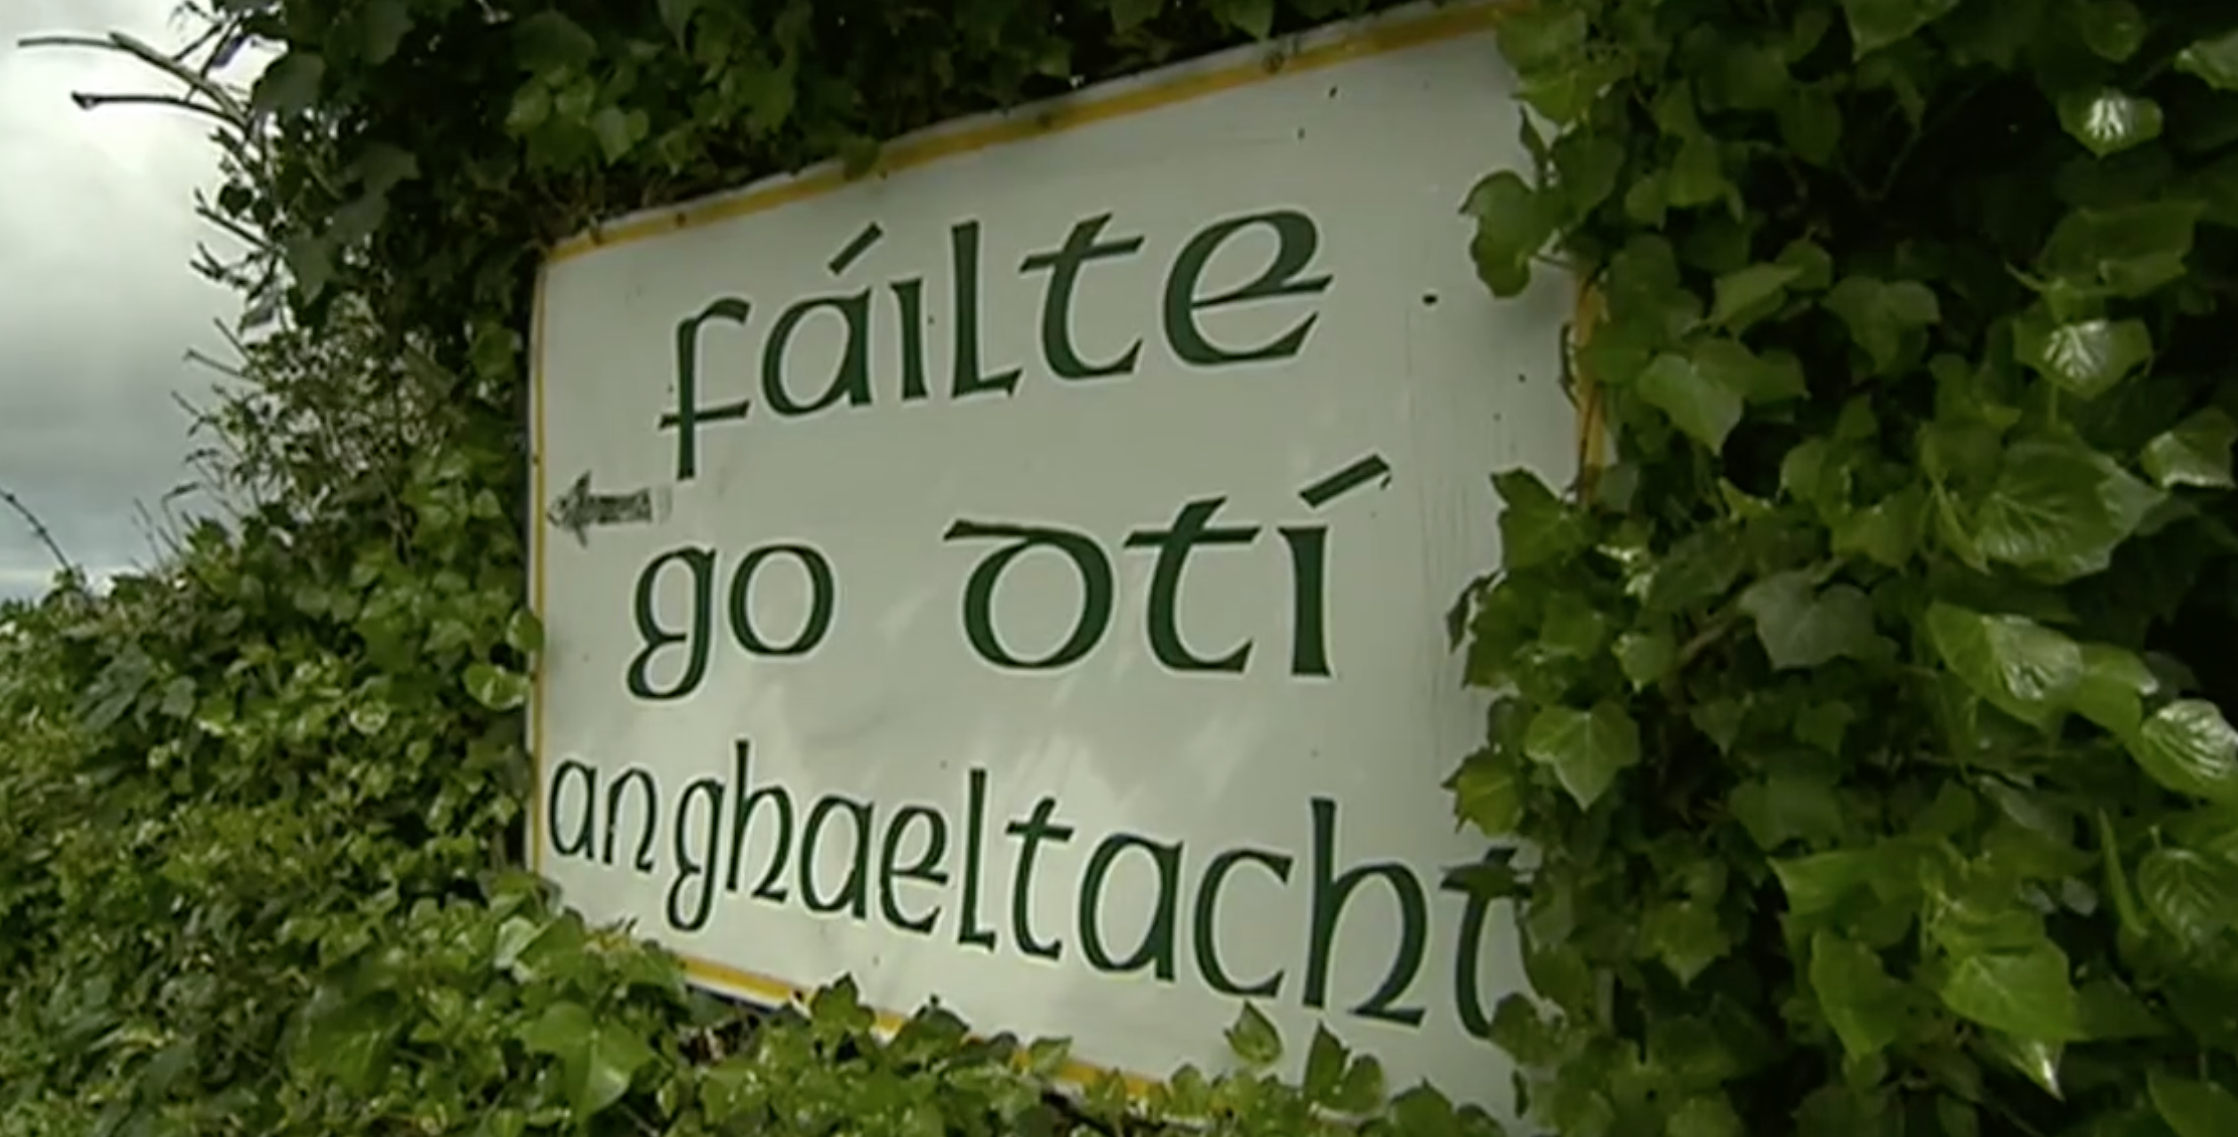 Irish language concerns in Rathcairn and approval given for hotel development and housing scheme